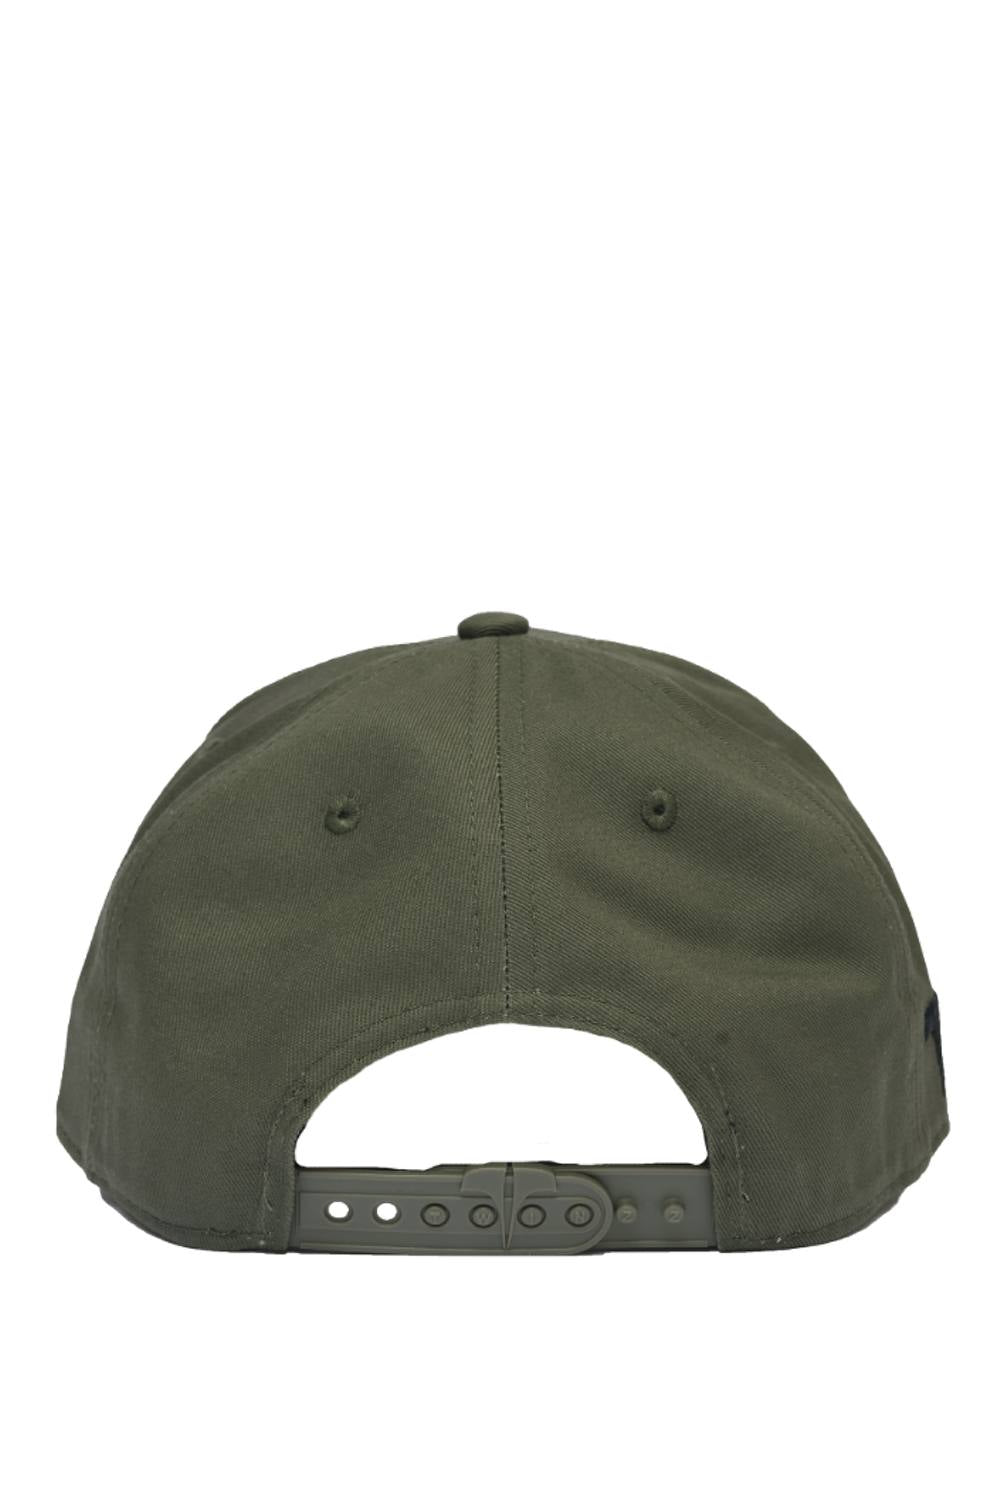 Twinzz 3D Full Trucker Cap - Khaki/Black - 2